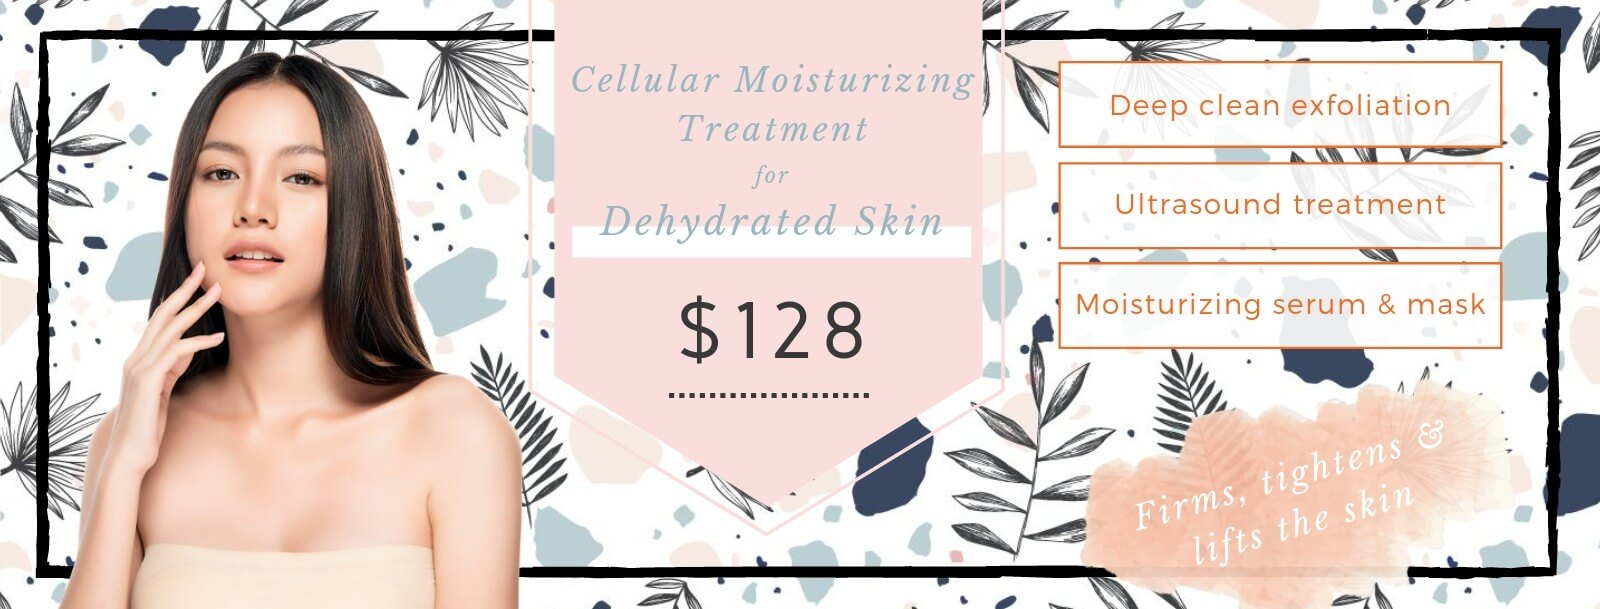 Cellular Moisturizing Treatment